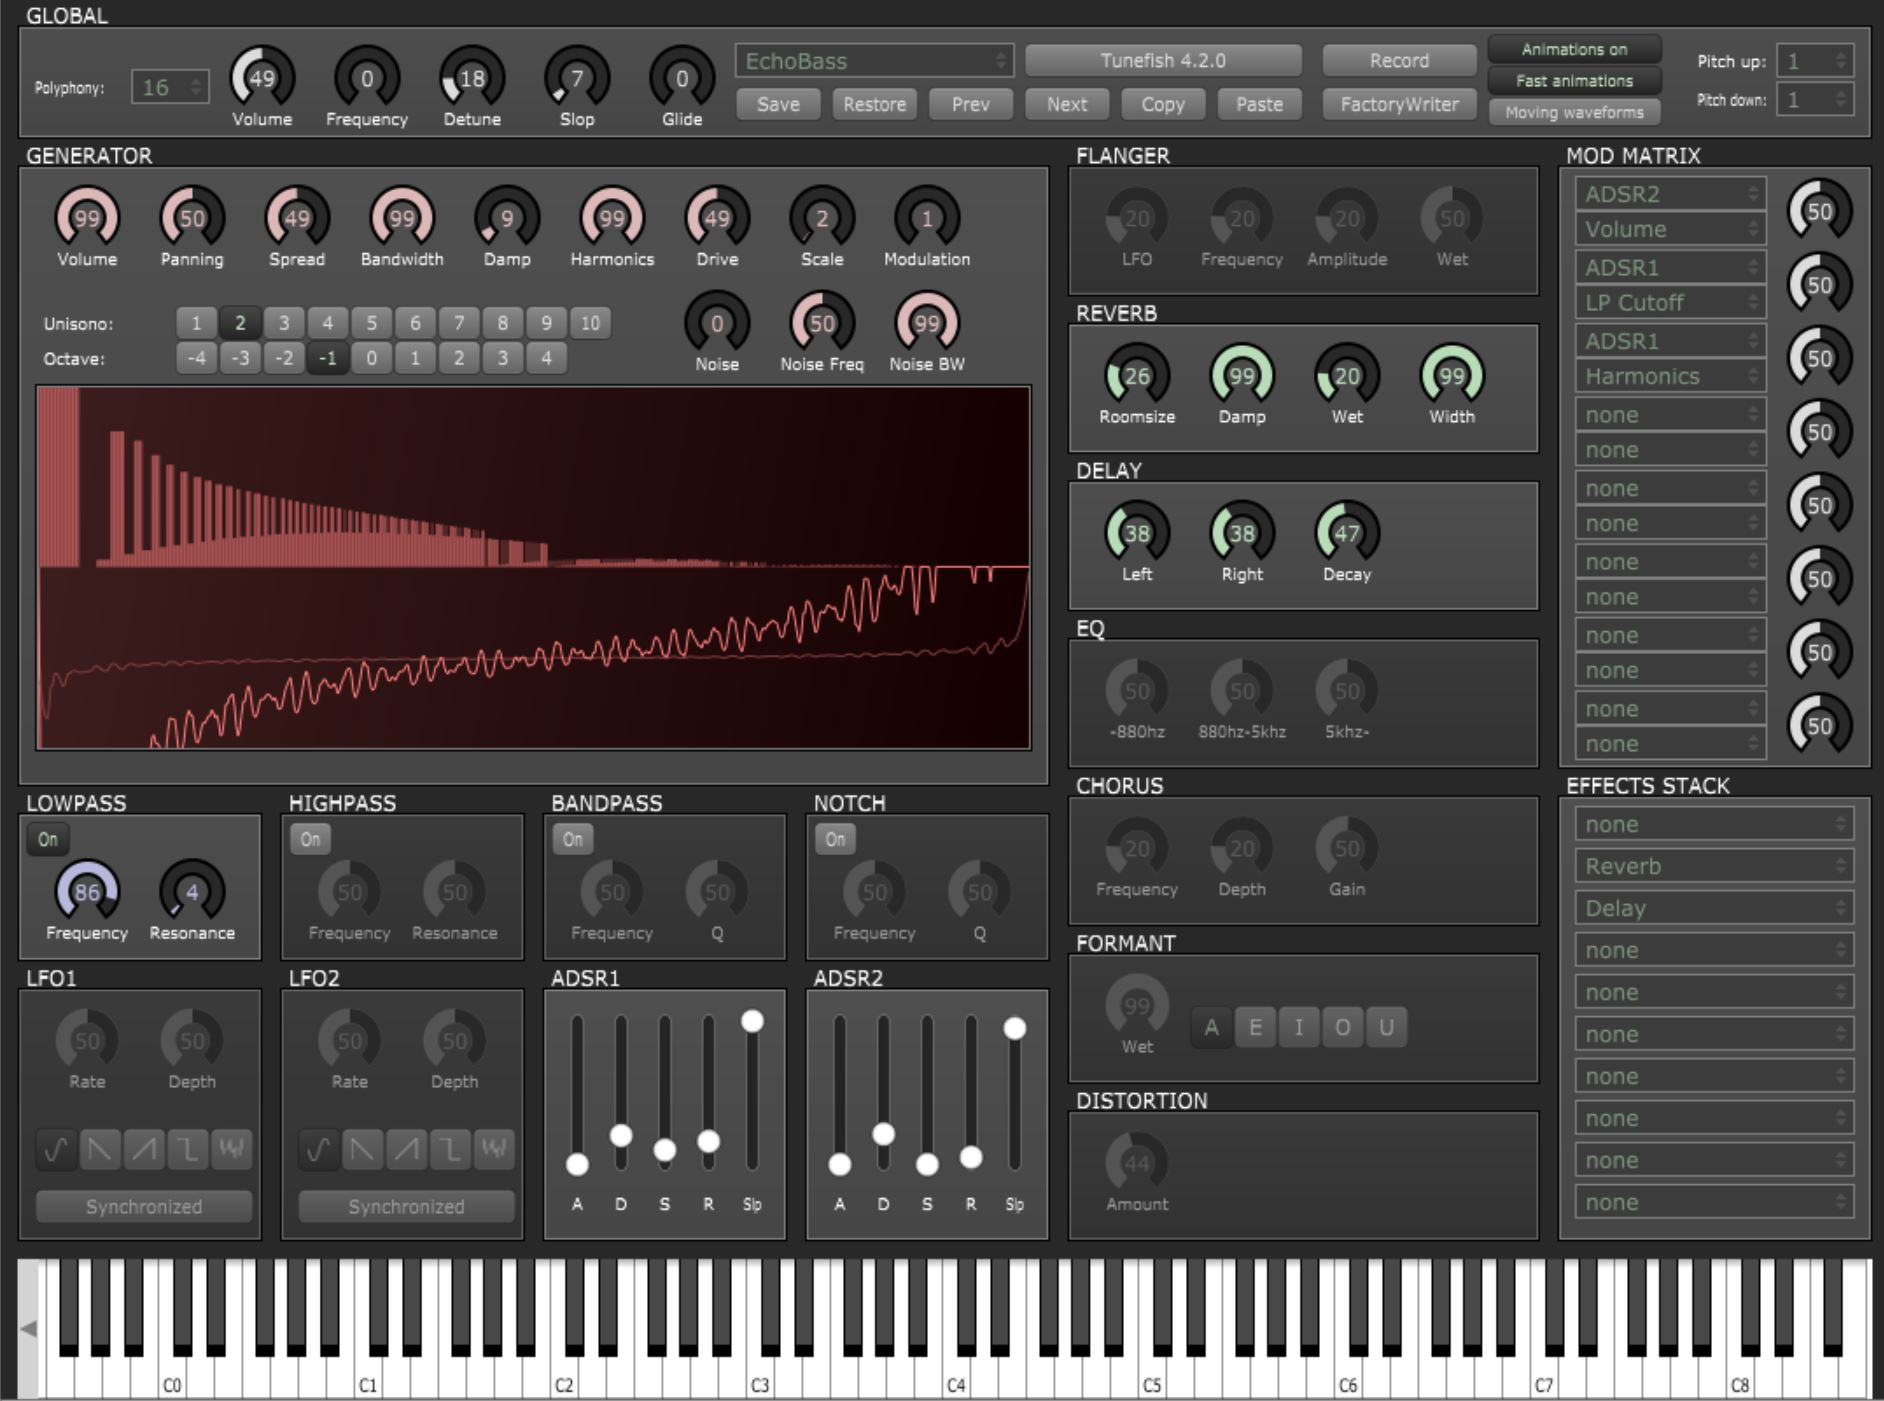 Tunefish 4 free software-synthesizer by Brain Control